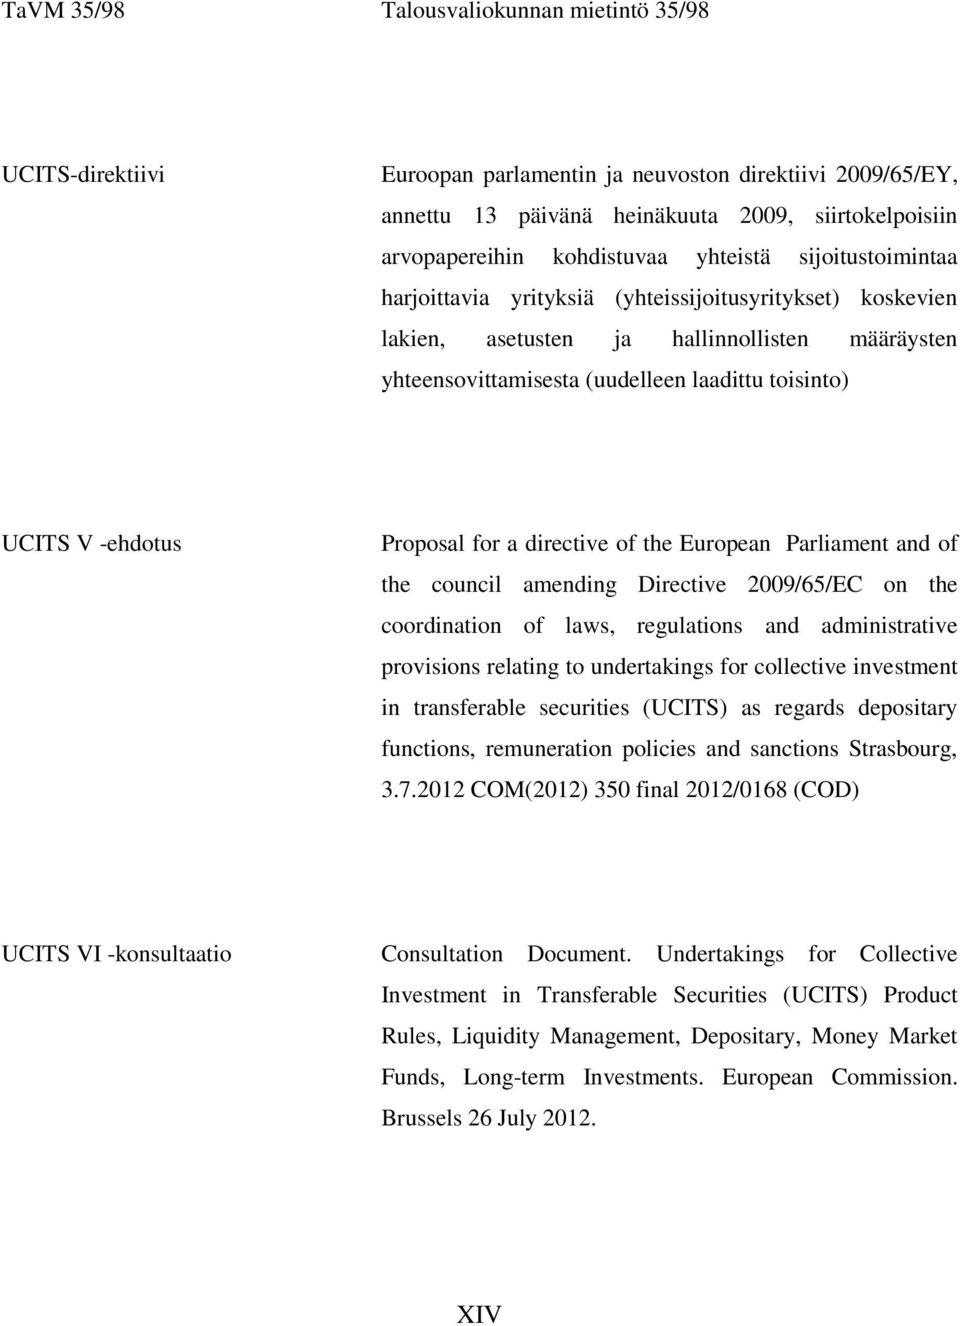 -ehdotus Proposal for a directive of the European Parliament and of the council amending Directive 2009/65/EC on the coordination of laws, regulations and administrative provisions relating to